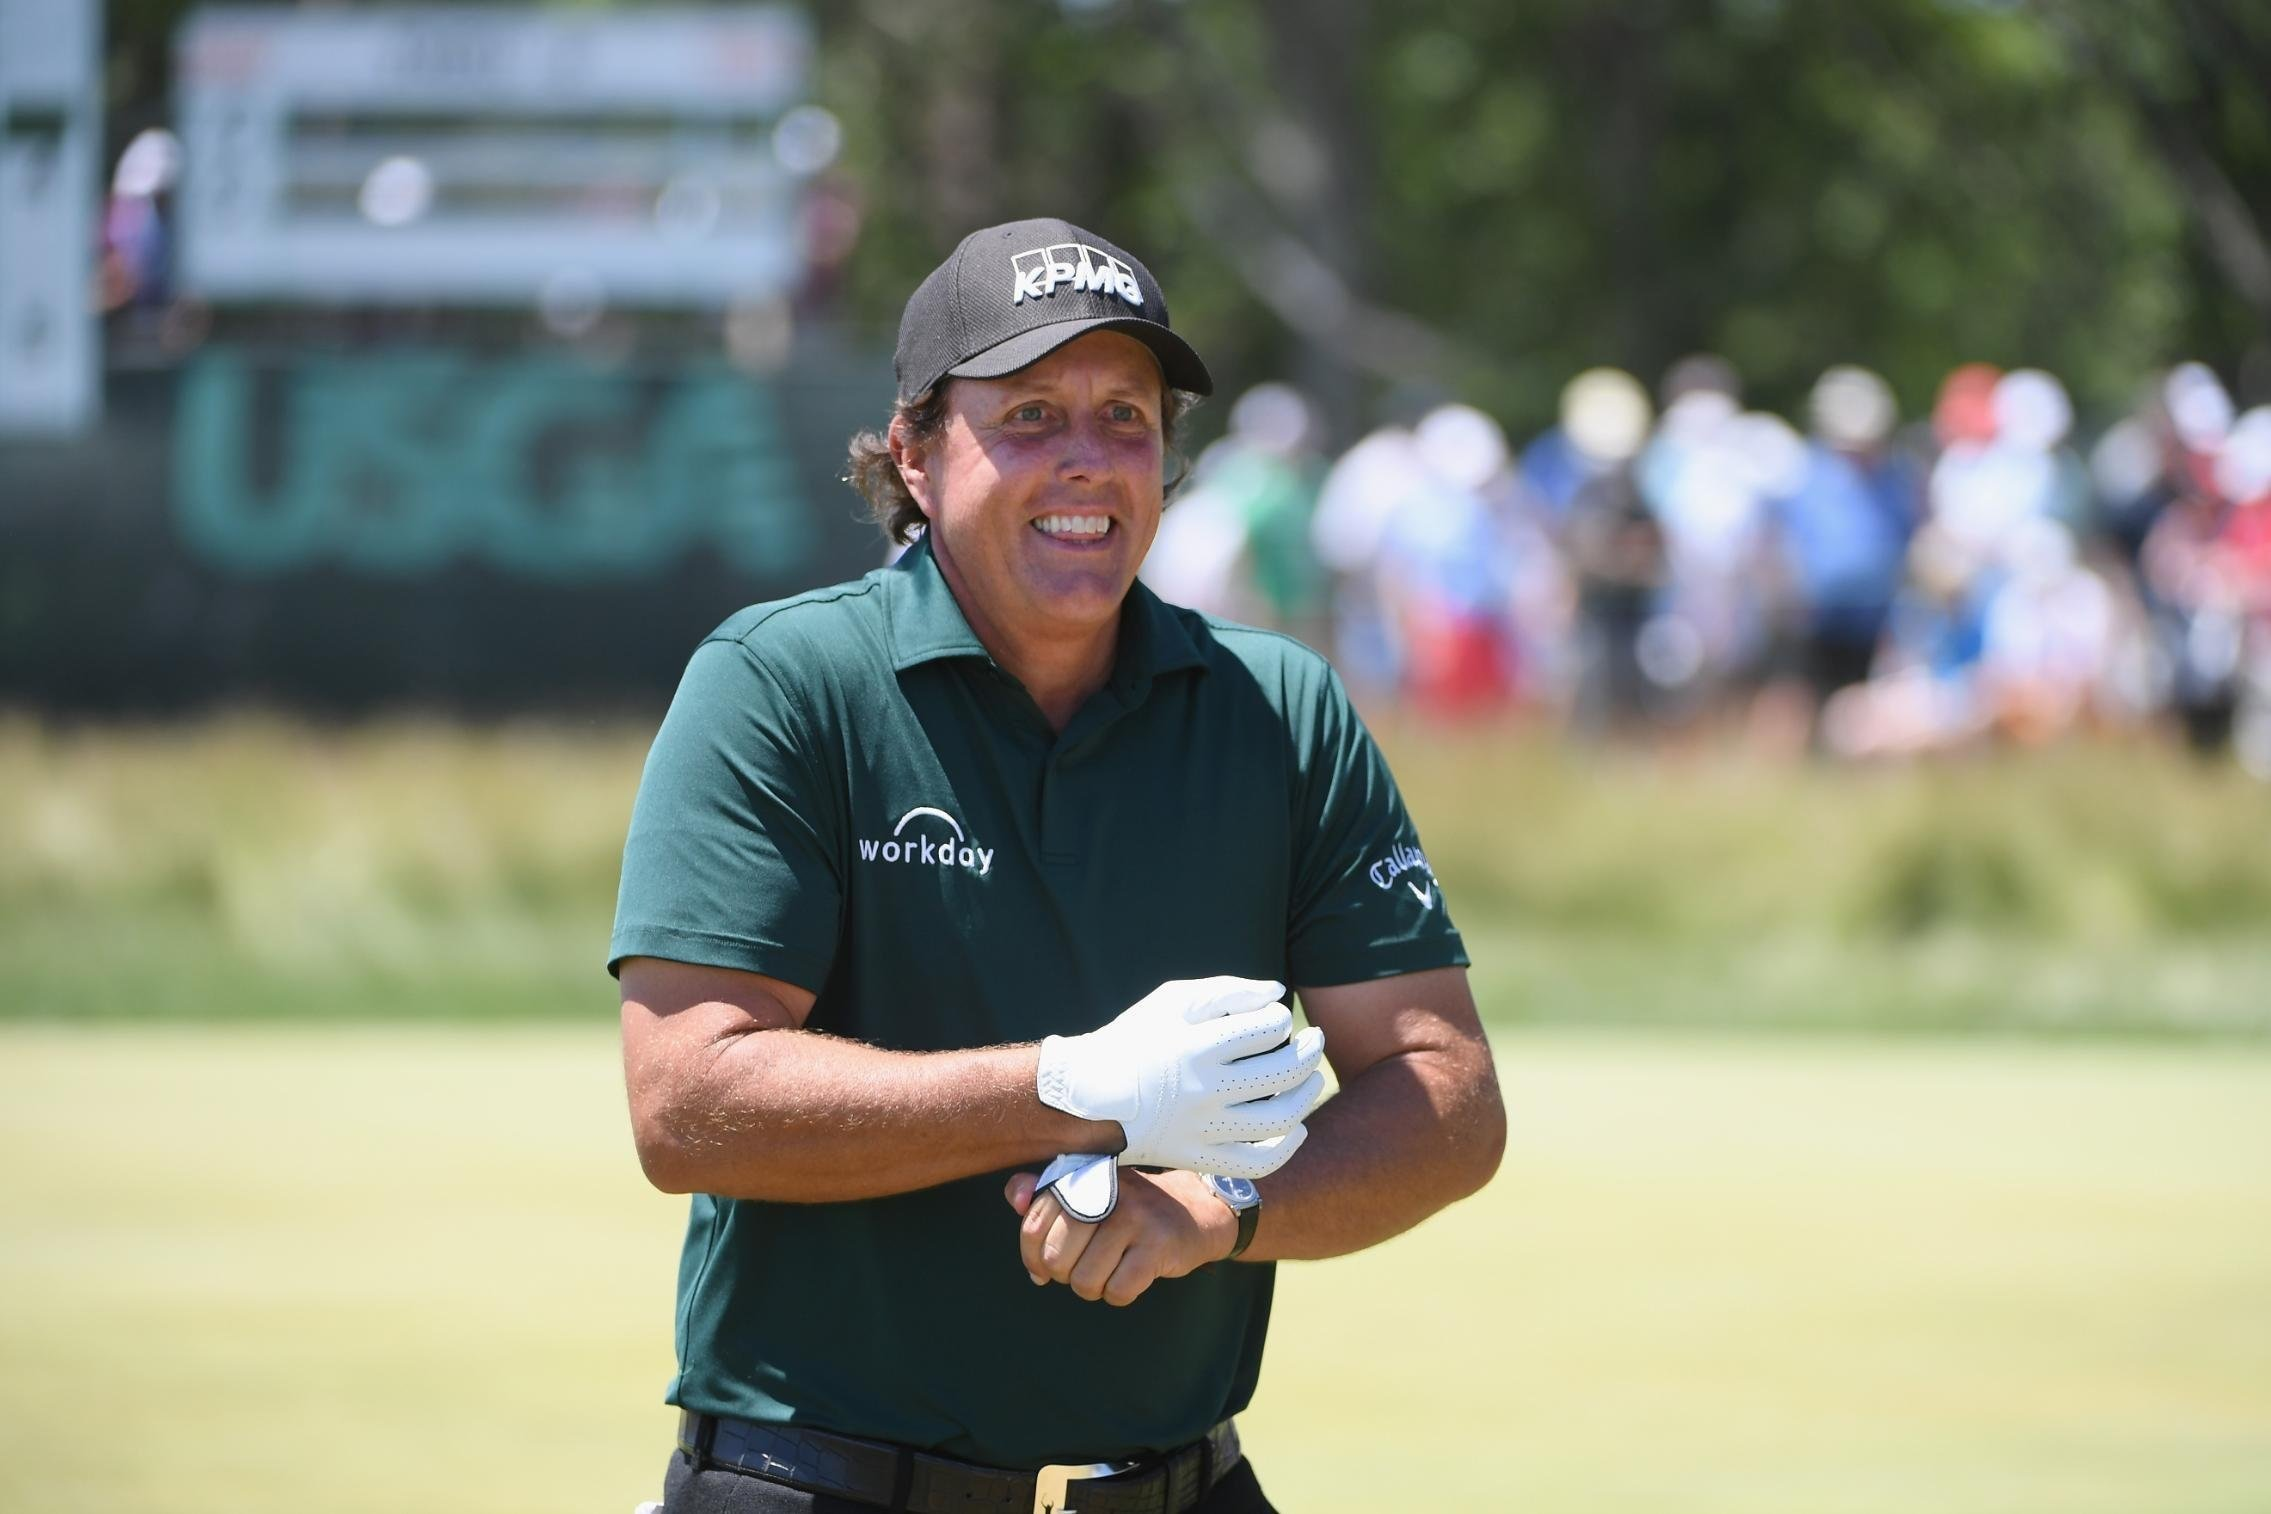 US Open: Phil Mickelson melts down, hits still-rolling ball